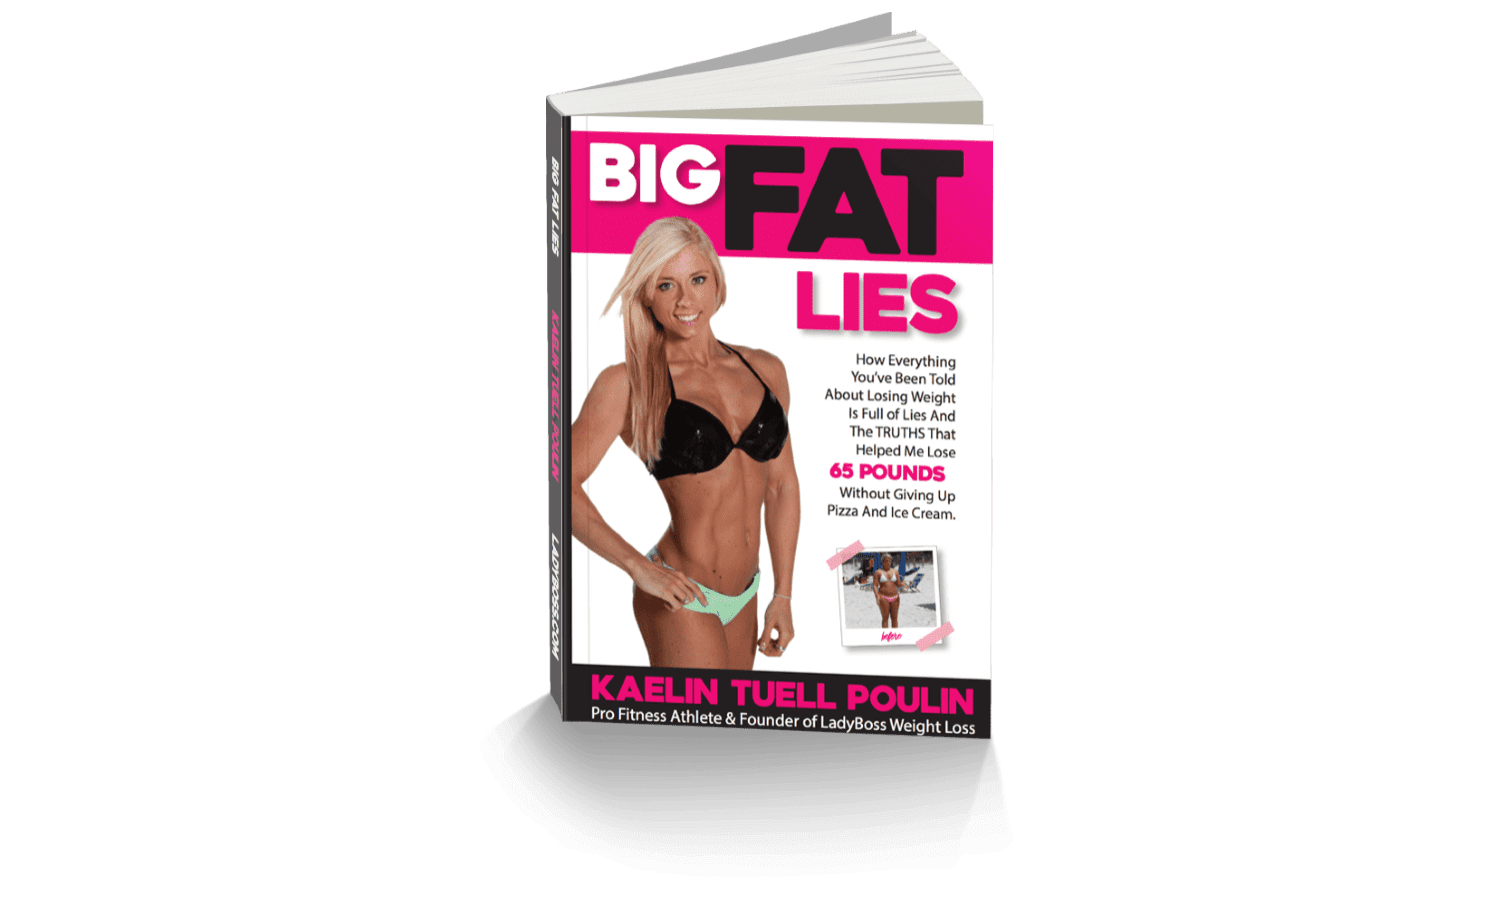 """The cover of the book """"Big Fat Lies"""""""